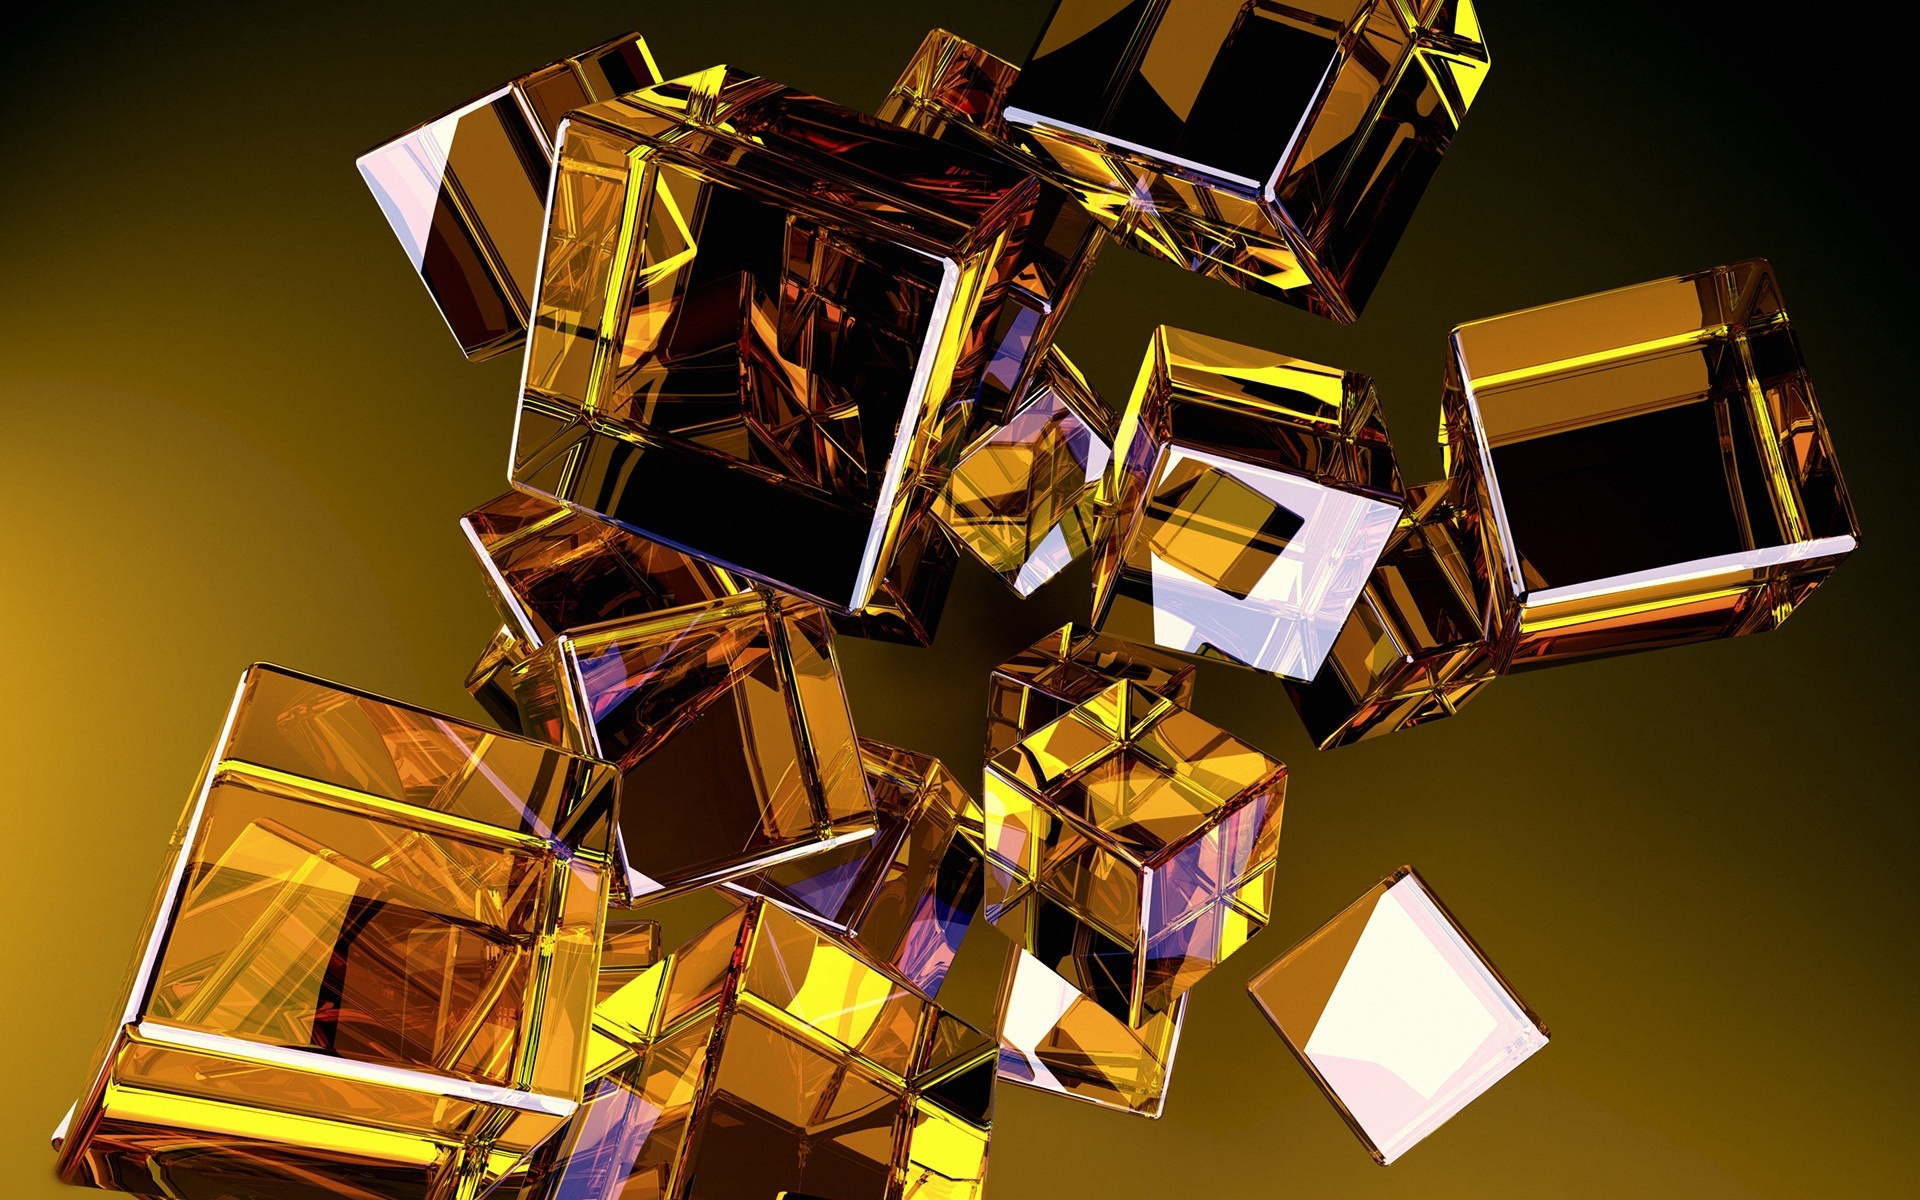 графика абстракция 3D куб graphics abstraction cube бесплатно